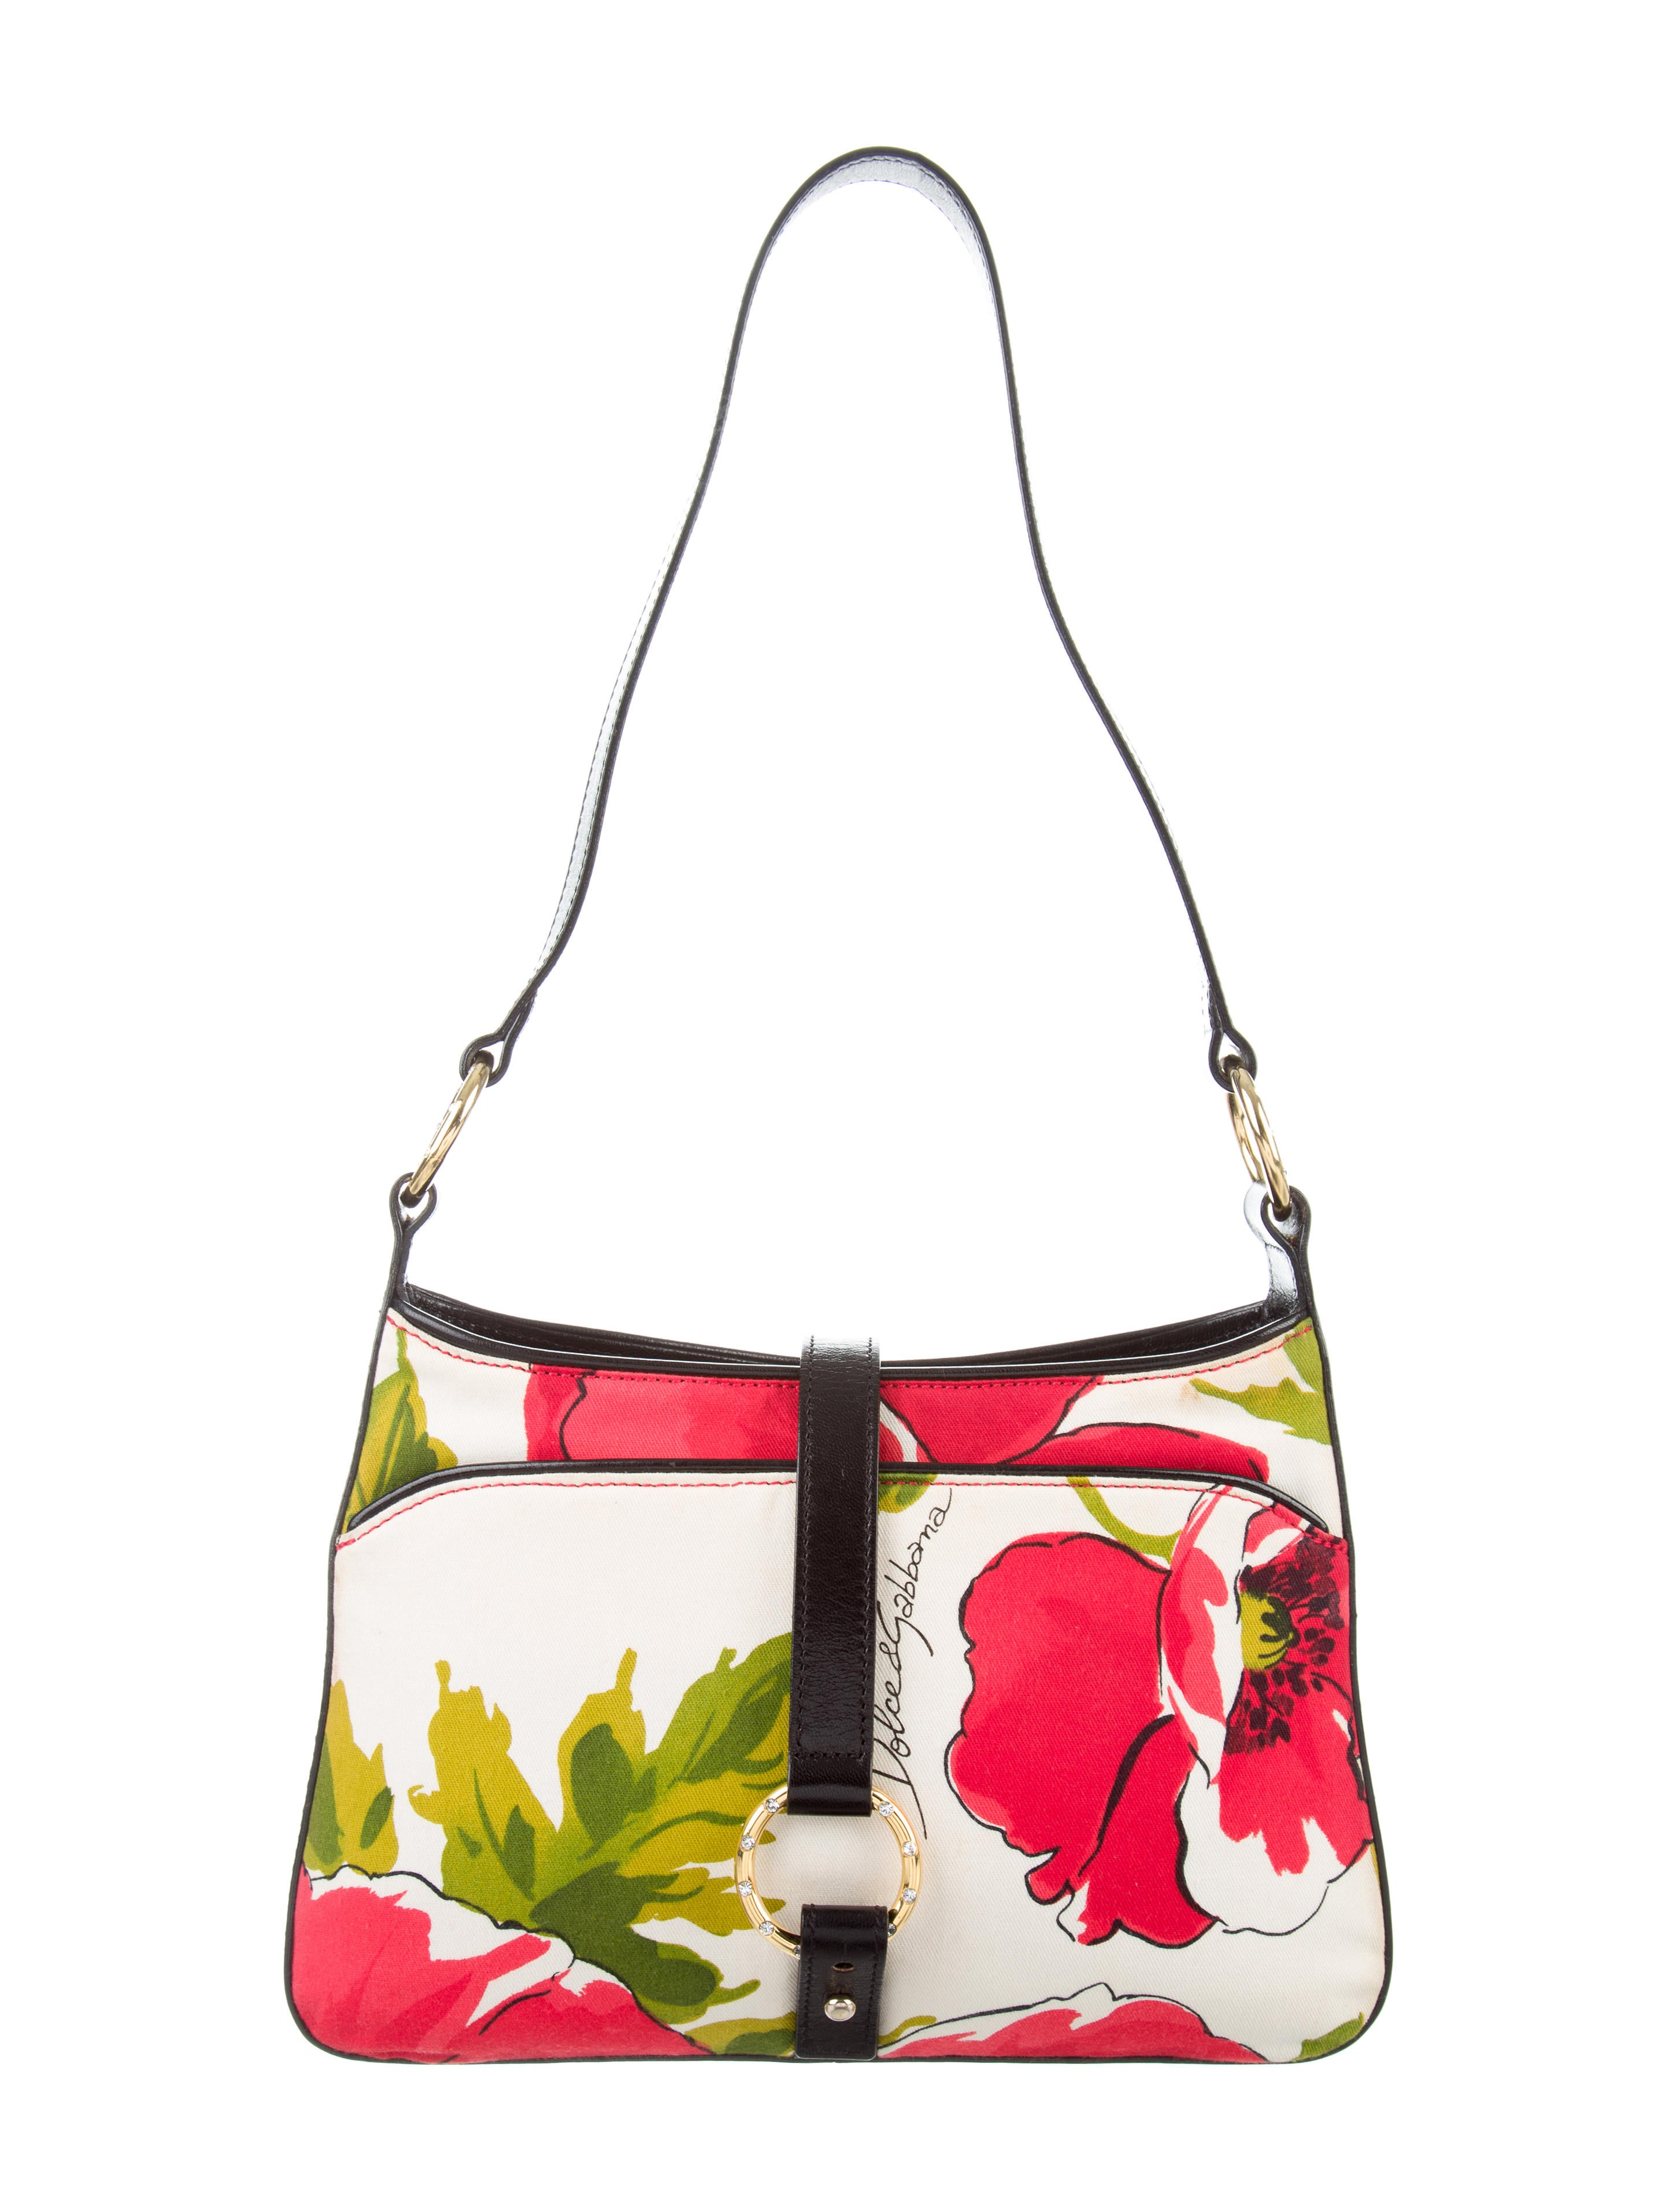 Dolce U0026 Gabbana Floral Print Shoulder Bag - Handbags - DAG87459 | The RealReal